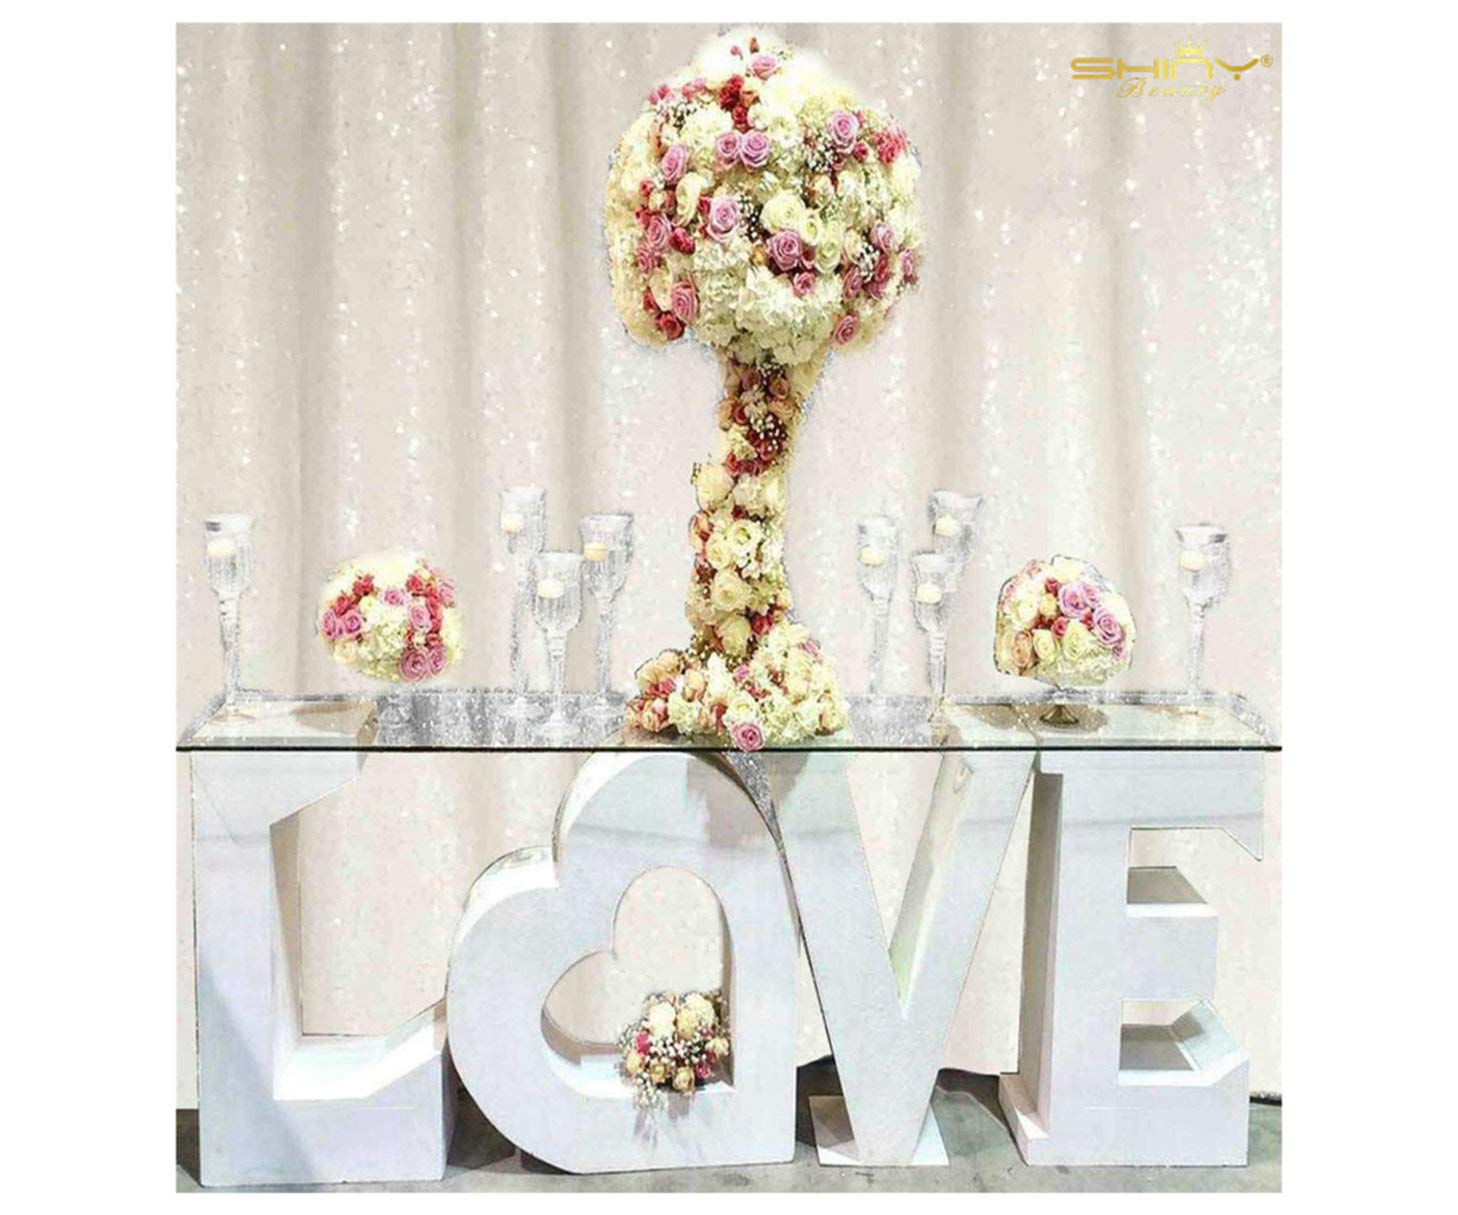 8 X 8, Ready to Dispatch,White Sequin Backdrops,White Sequin Photo Booth Backdrop, Party Backdrops,Wedding Backdrops, Sparkling Photography Prop